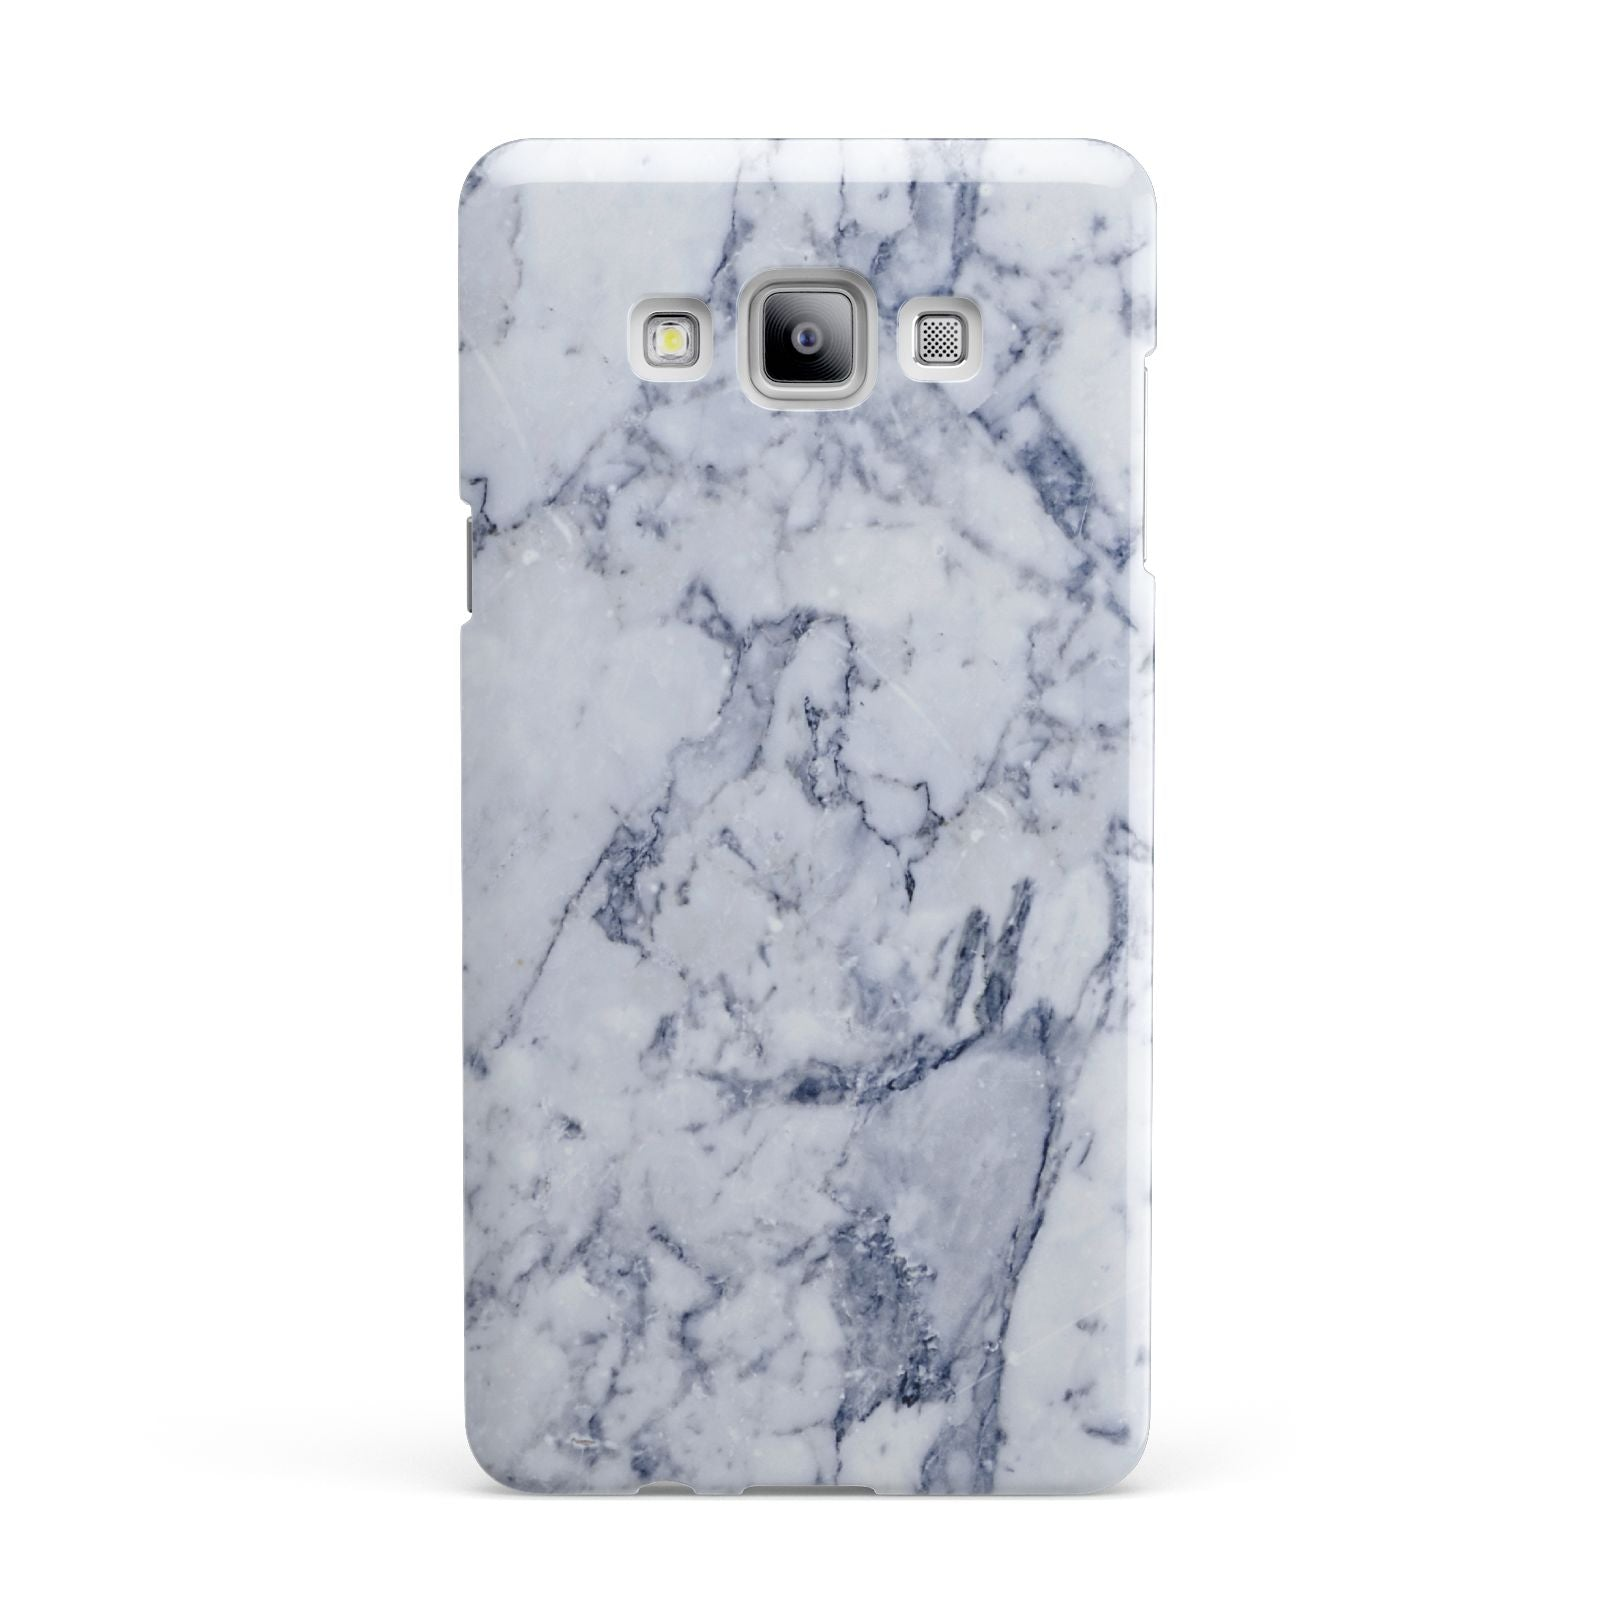 Faux Marble Blue Grey White Samsung Galaxy A7 2015 Case